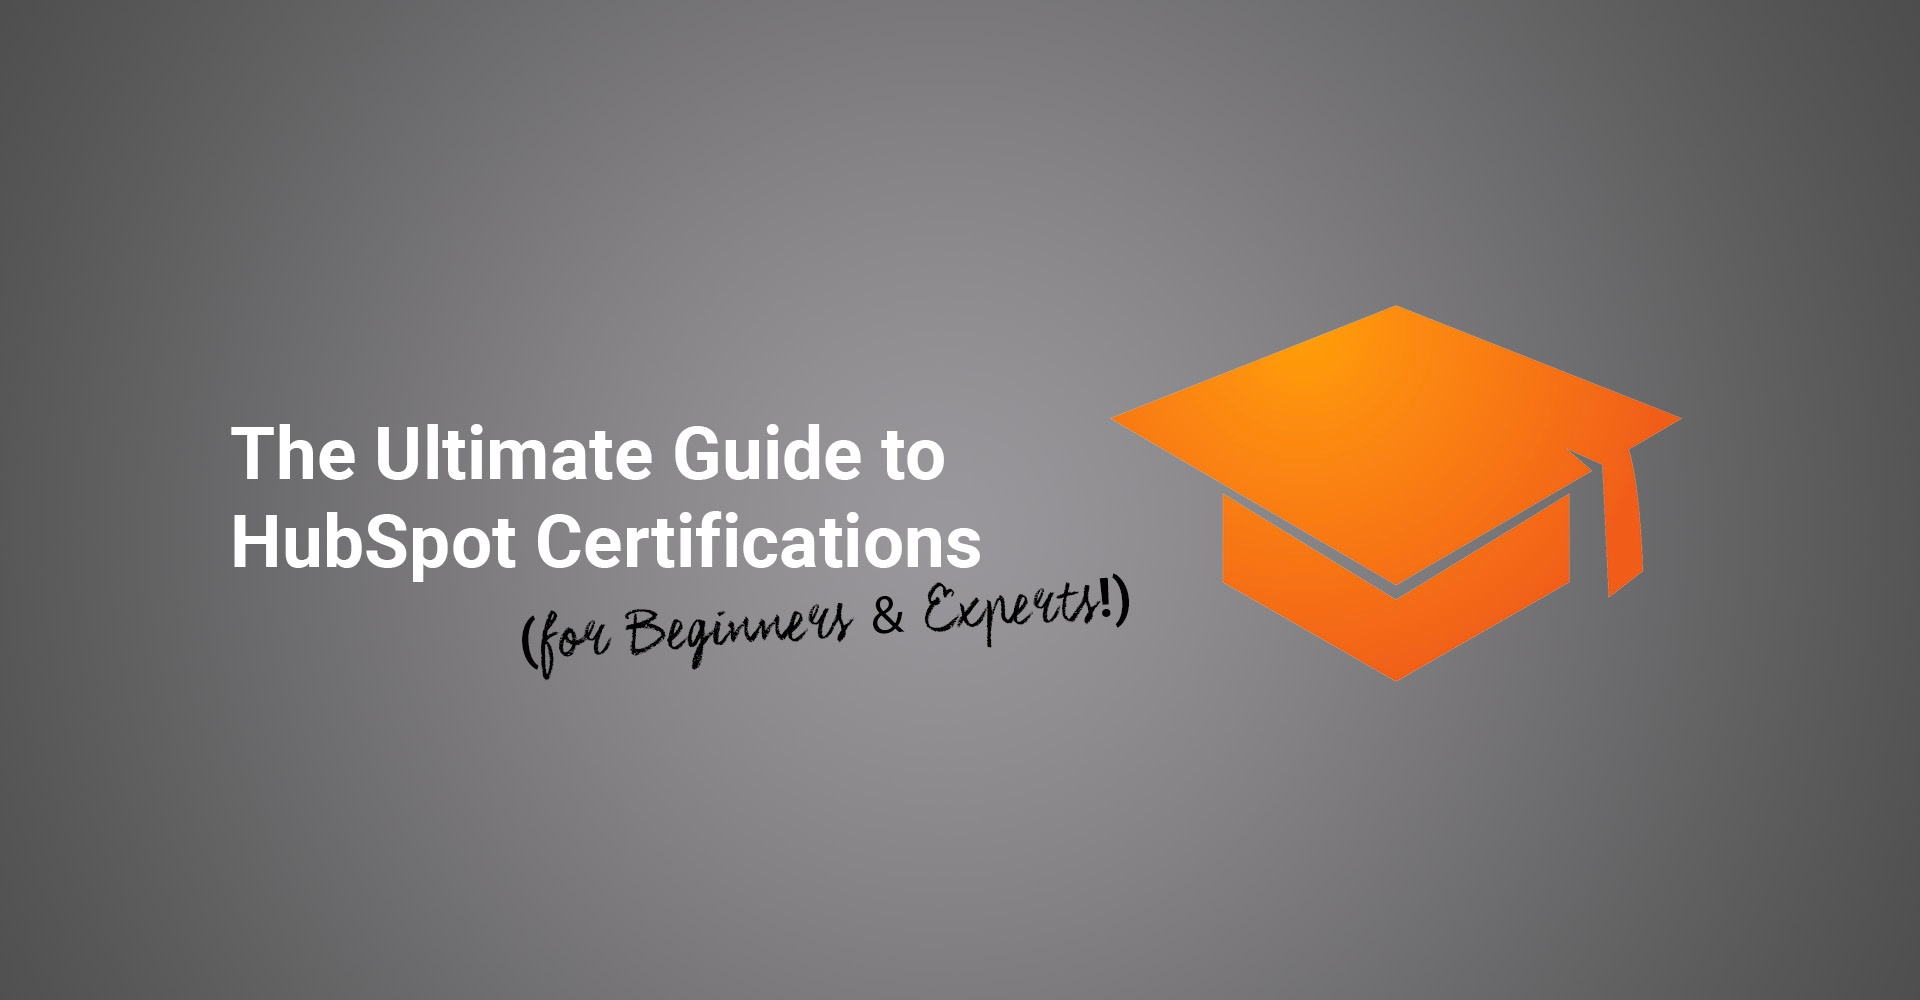 The ultimate guide to HubSpot certification options (for beginners and experts!)